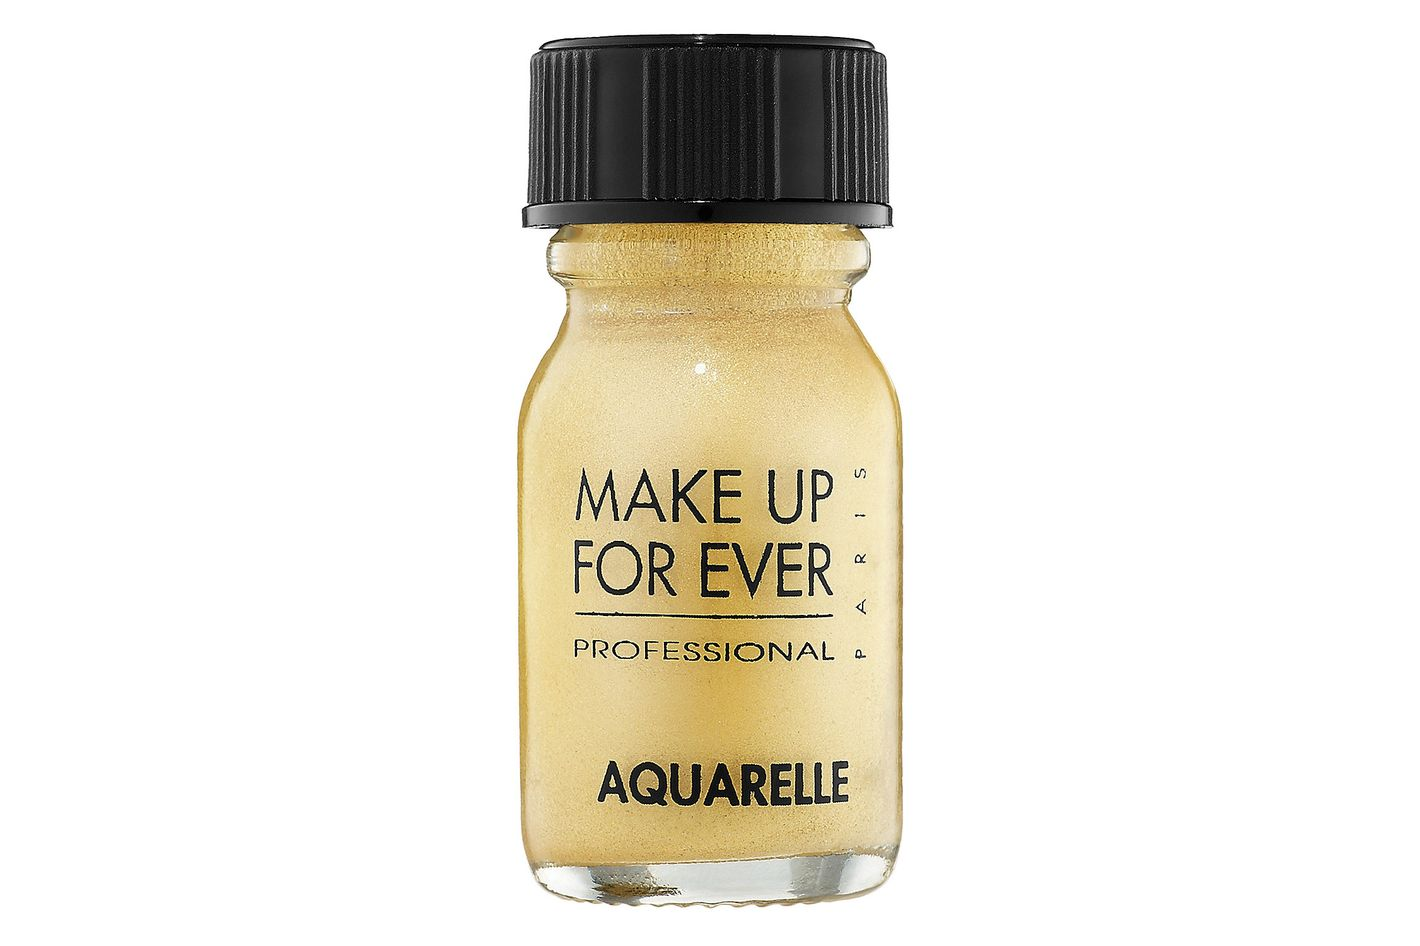 Make Up For Ever Aquarelle